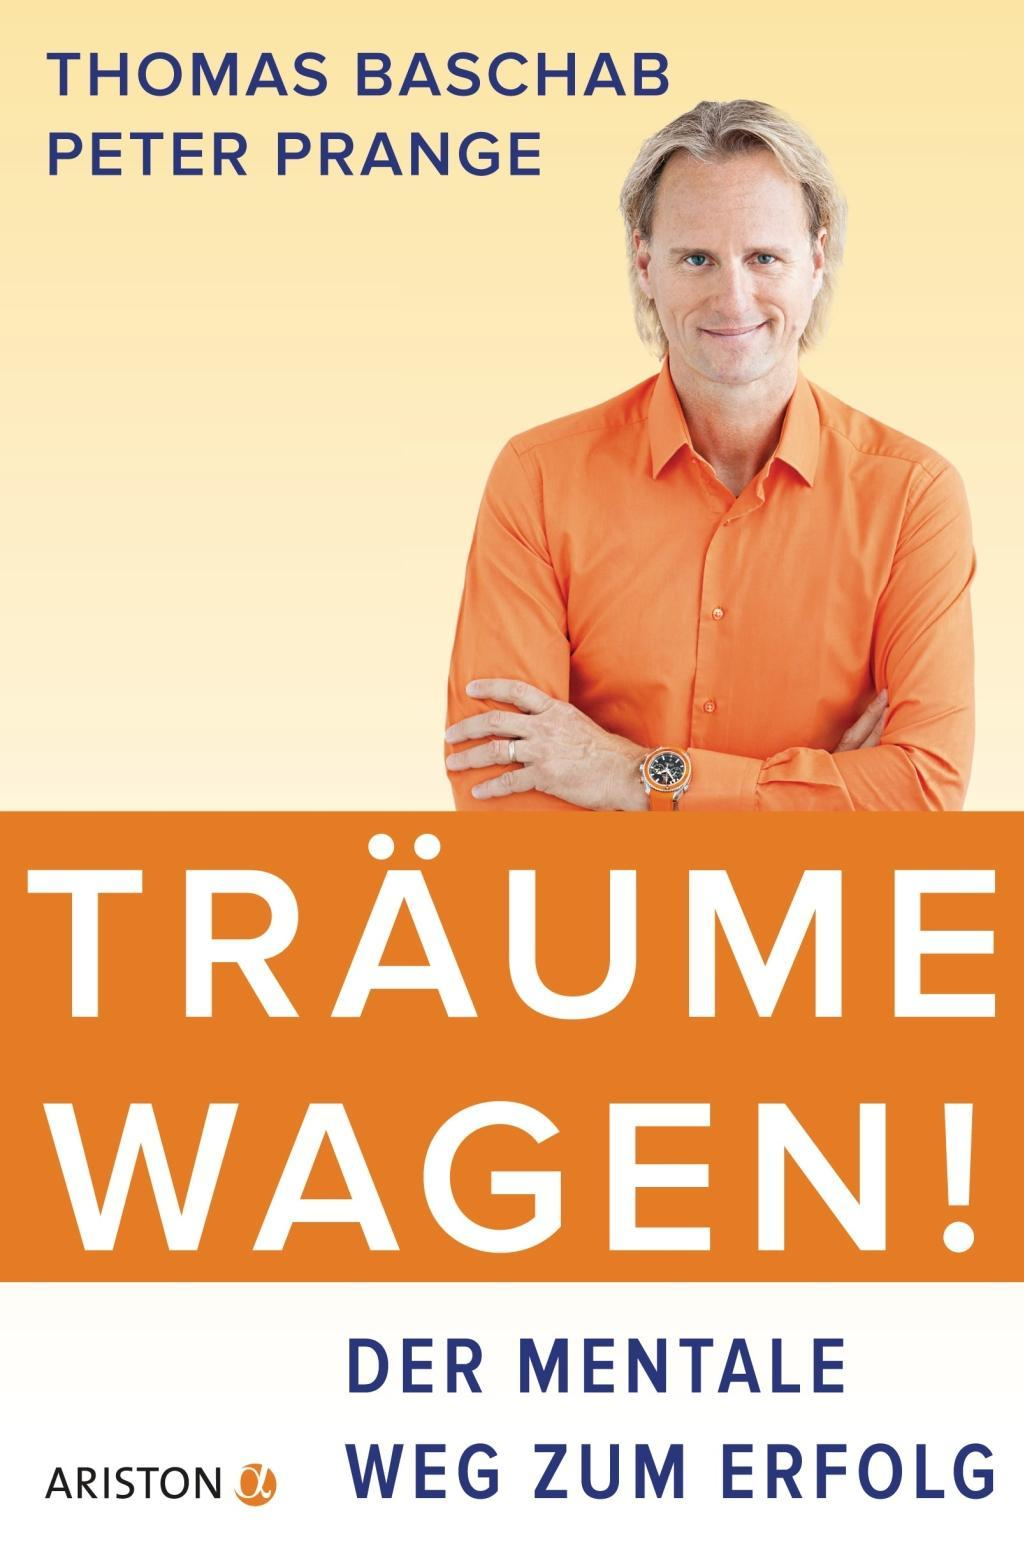 Ariston Verlag Trume wagen! (Prange Peter)(Cartonat)